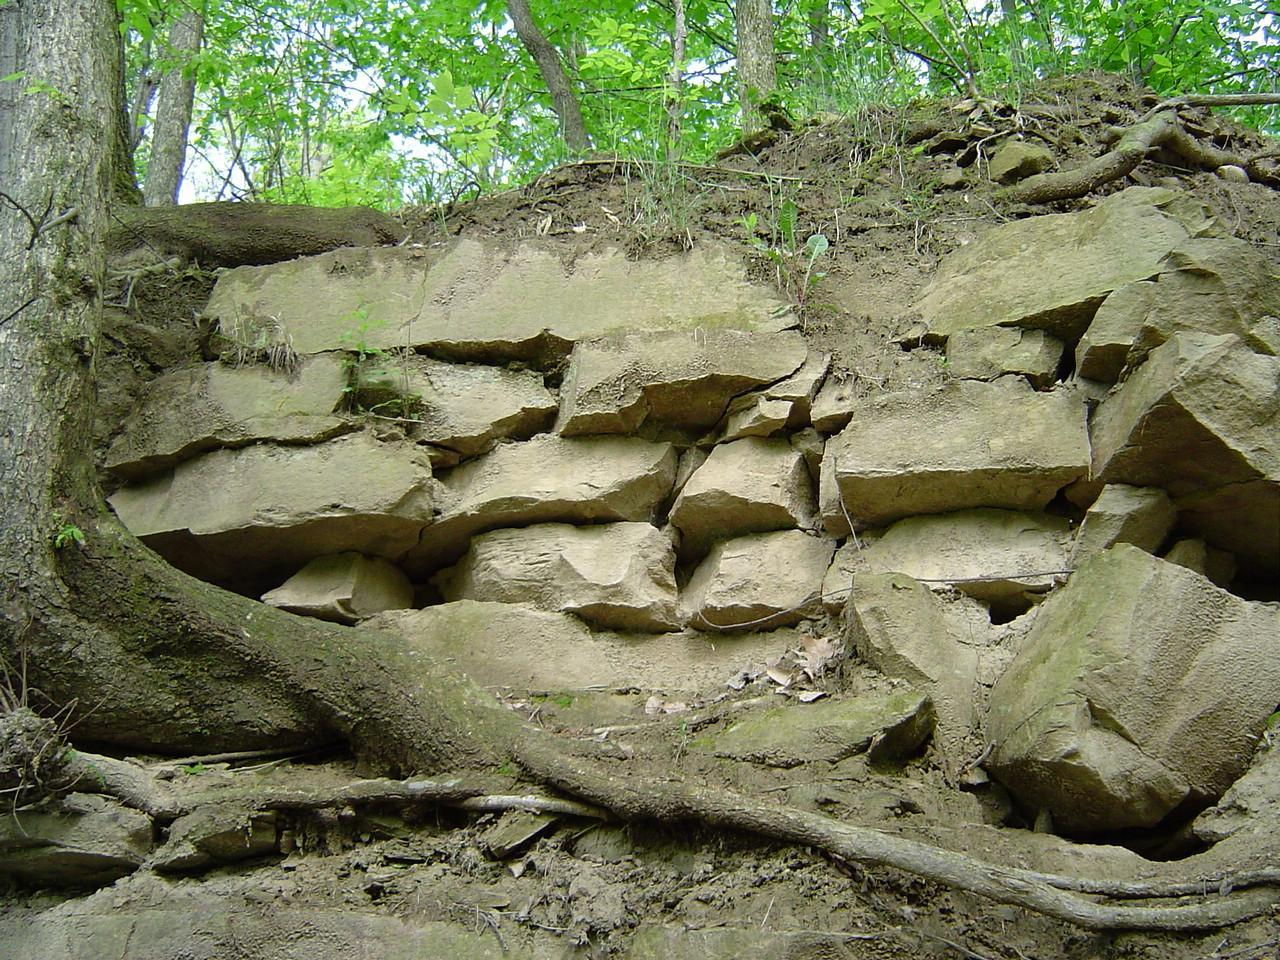 Pennsylvanian Sandstones at Grand Ledge, MI http://www.msstate.